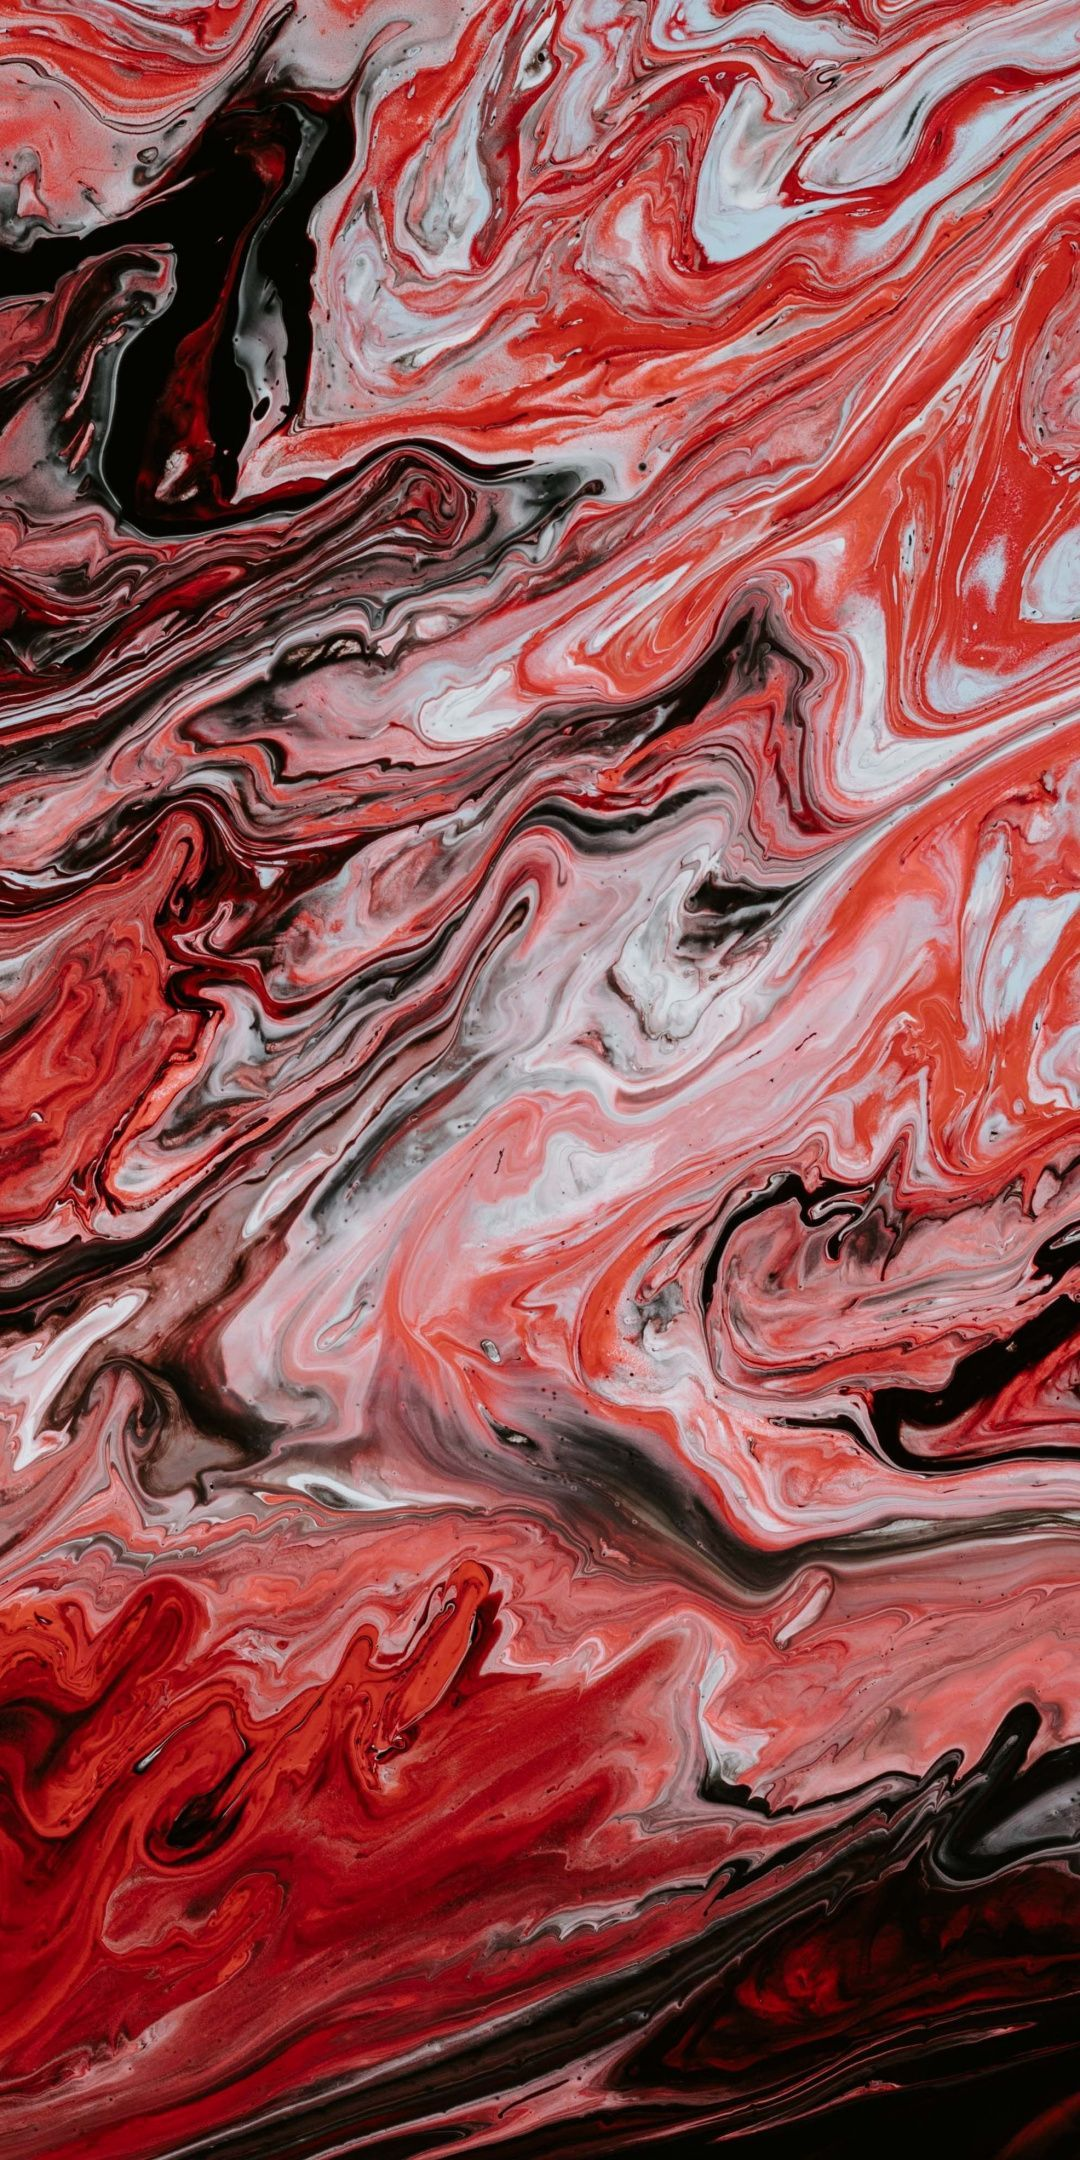 1080x2160 Red, canvas, texture, artwork, 1080x2160 wallpaper ...